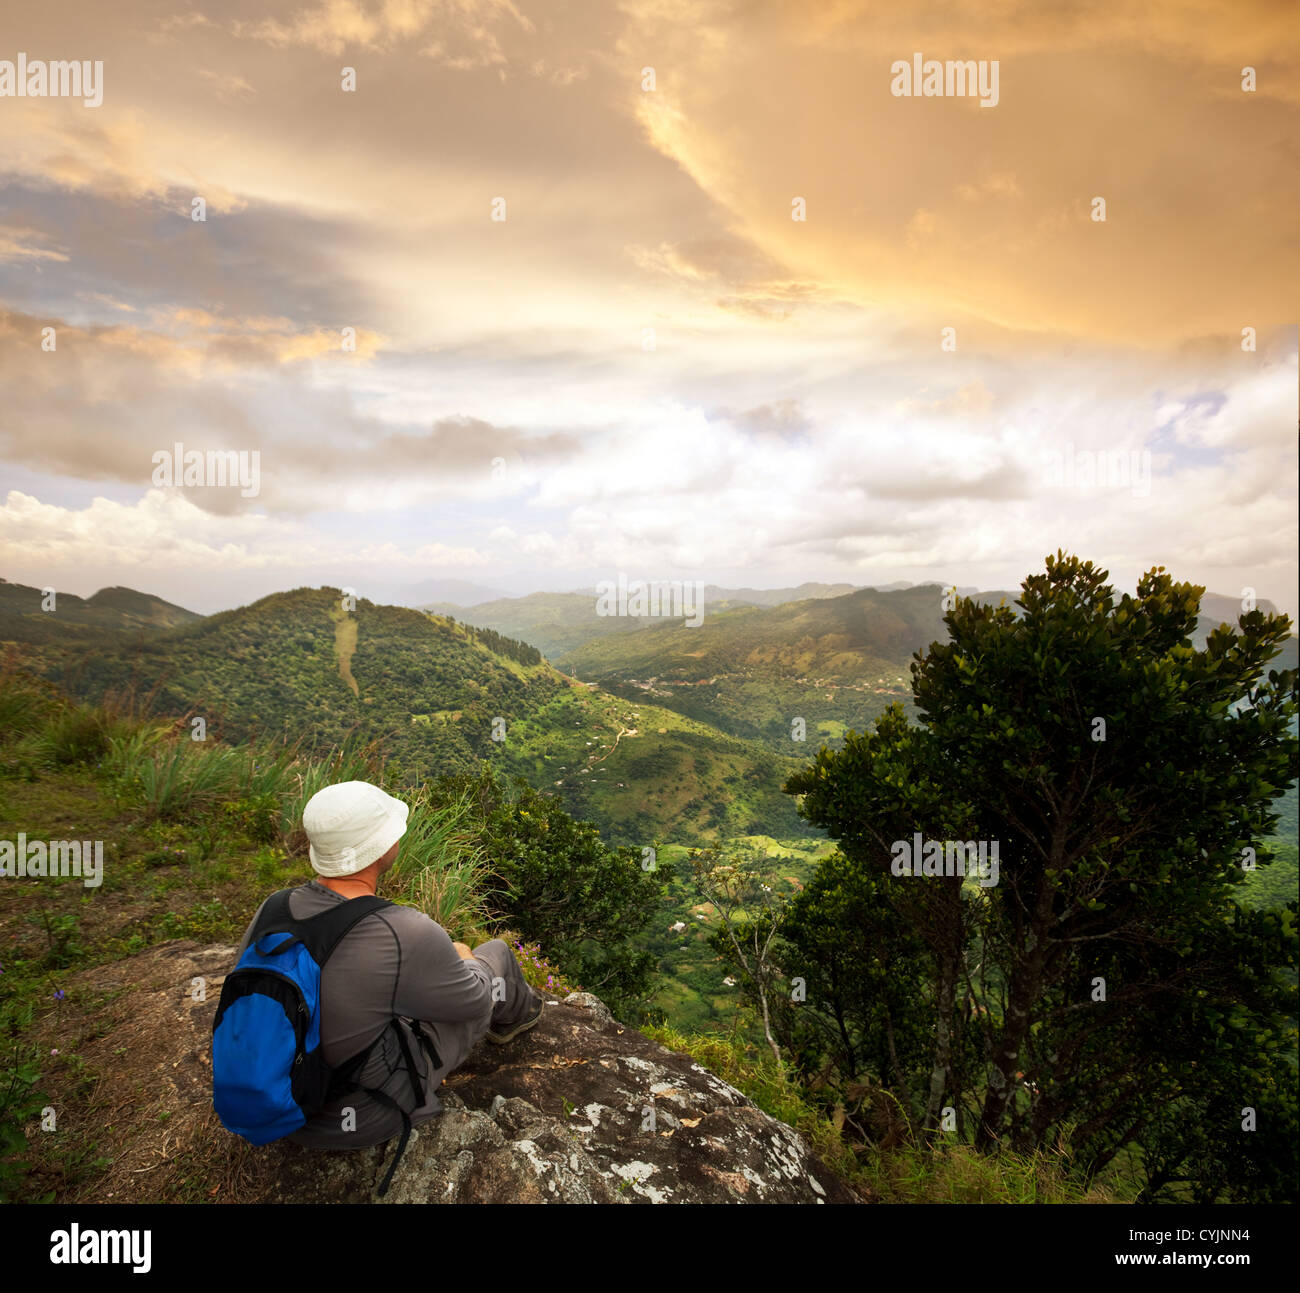 Randonneur en montagne Photo Stock